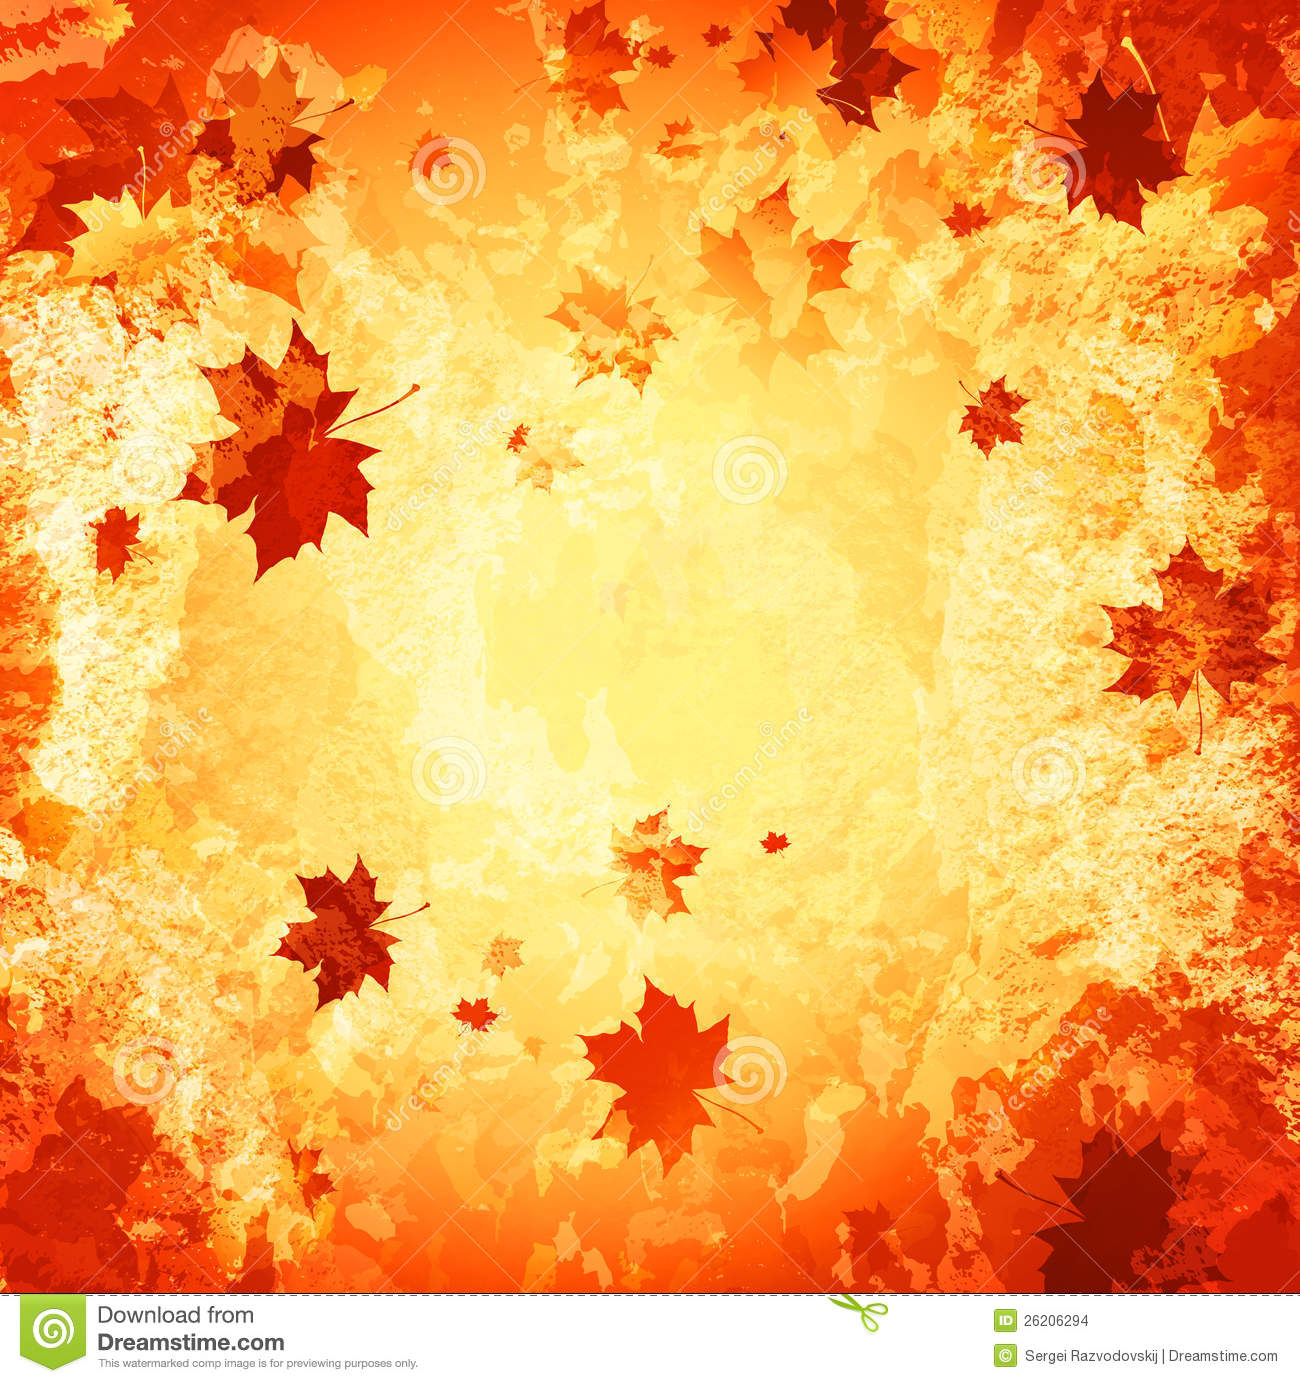 Autumn Abstract Grunge Background Stock Images